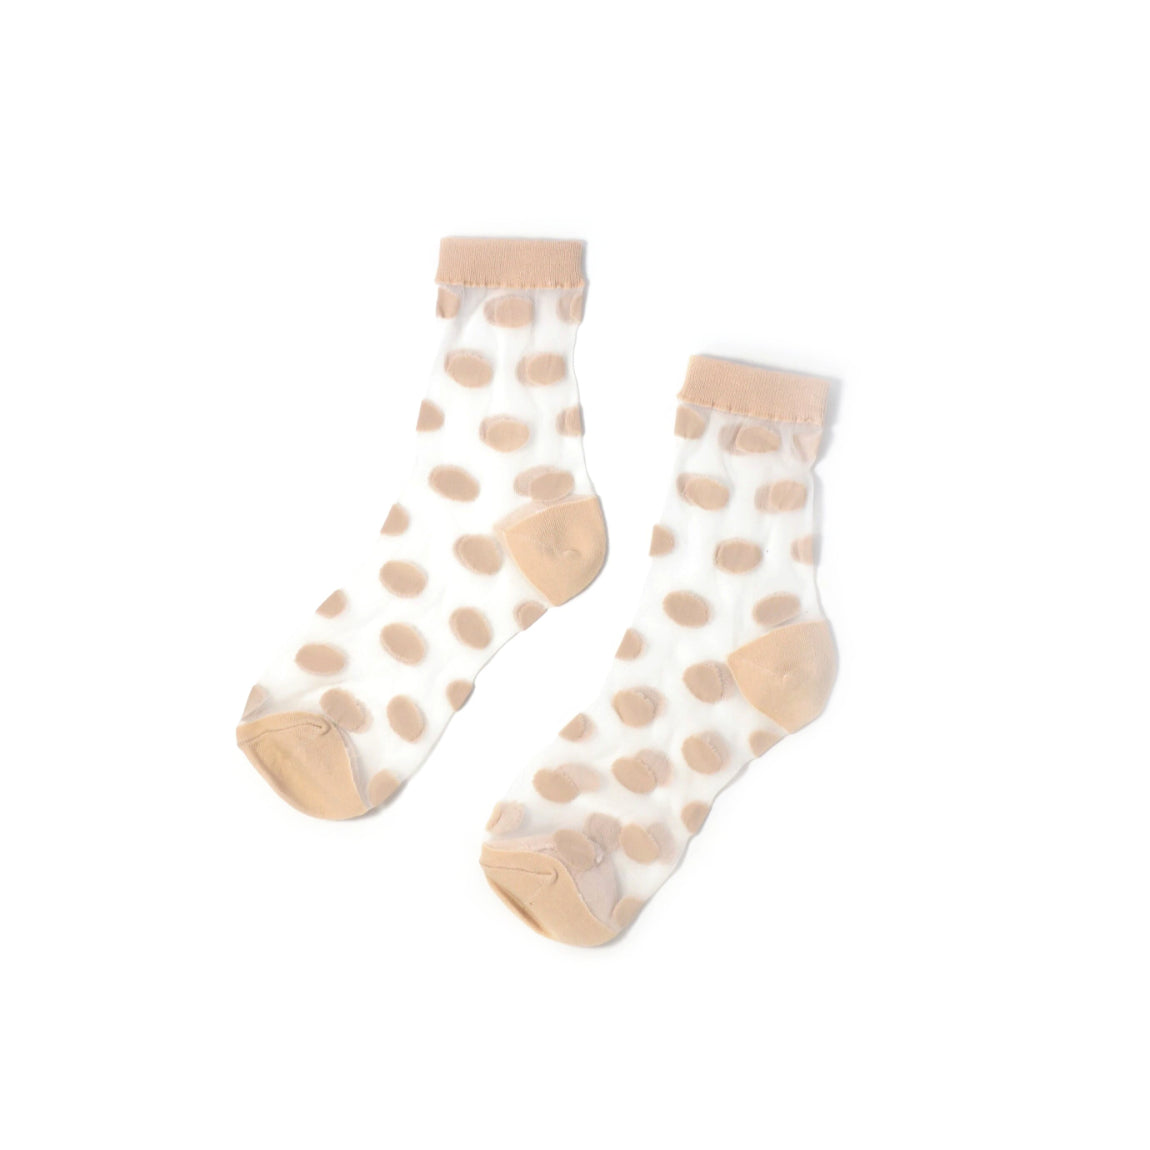 women's polka dot sheer crew socks in beige // hello shiso hair accessories for girls